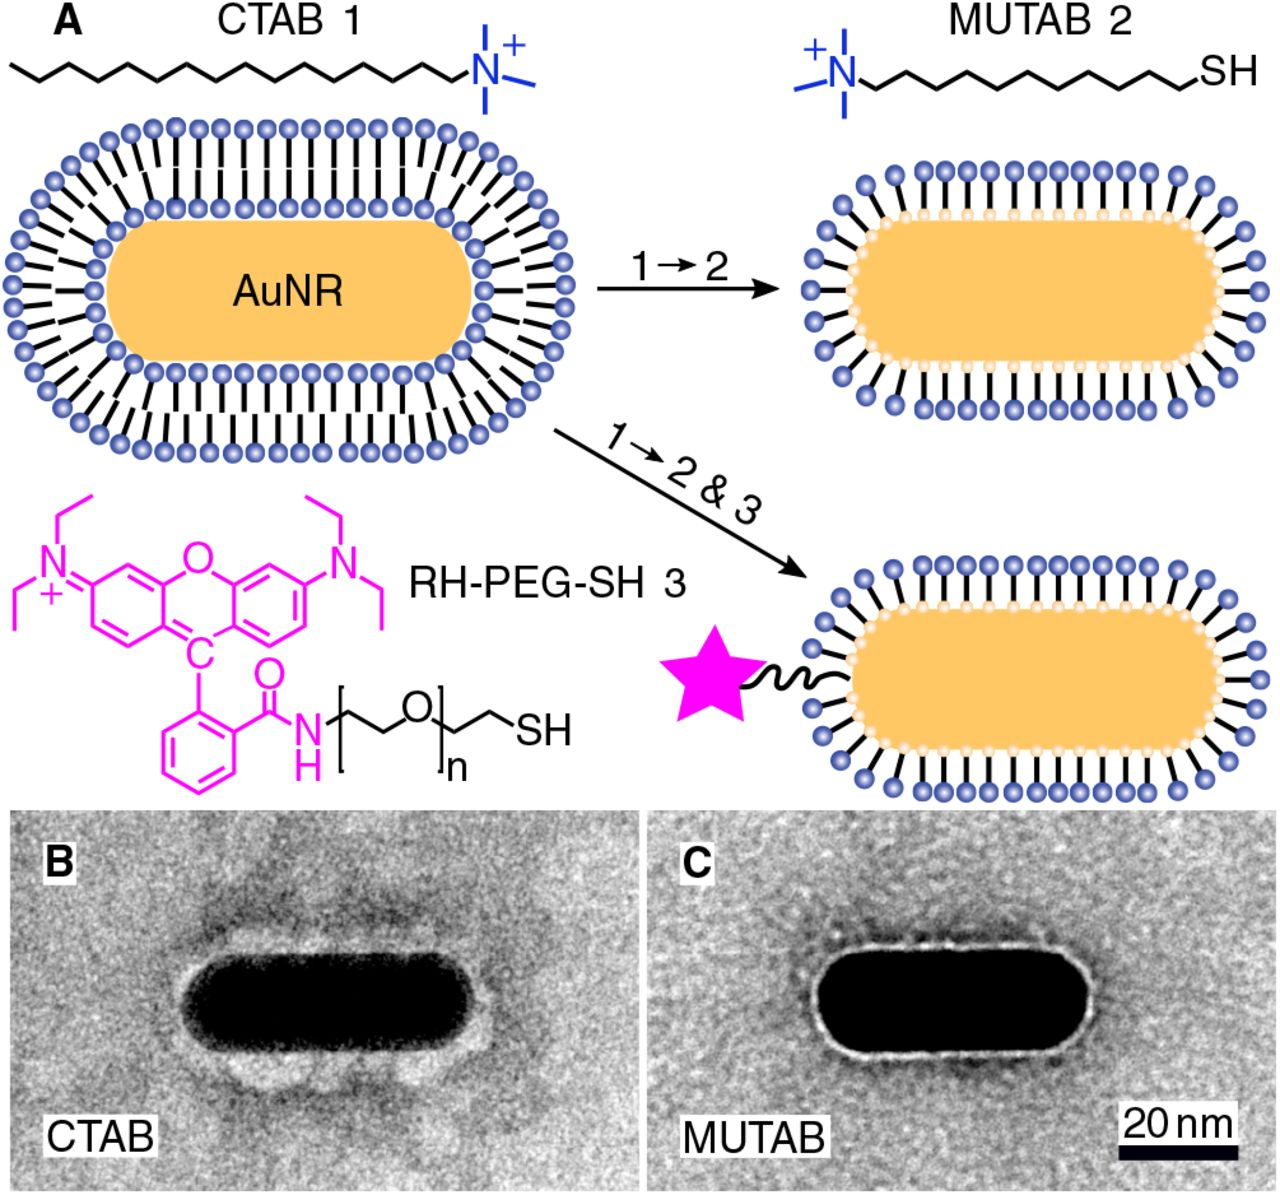 ( A ) A gold <t>nanorod</t> (AuNR) coated with an adsorbed CTAB (Molecule 1) bilayer is functionalized with MUTAB (Molecule 2) to create a monolayer of cationic ligands covalently bound to the nanorod surface via gold-thiol bonds (top row). Alternatively, MUTAB was complemented with a rhodamine-PEG-thiol derivative (RH-PEG-SH, n = 77, Molecule 3) as a fluorescent label. Negative-stained TEM images of ( B ) CTAB-coated and ( C ) MUTAB-functionalized AuNRs.